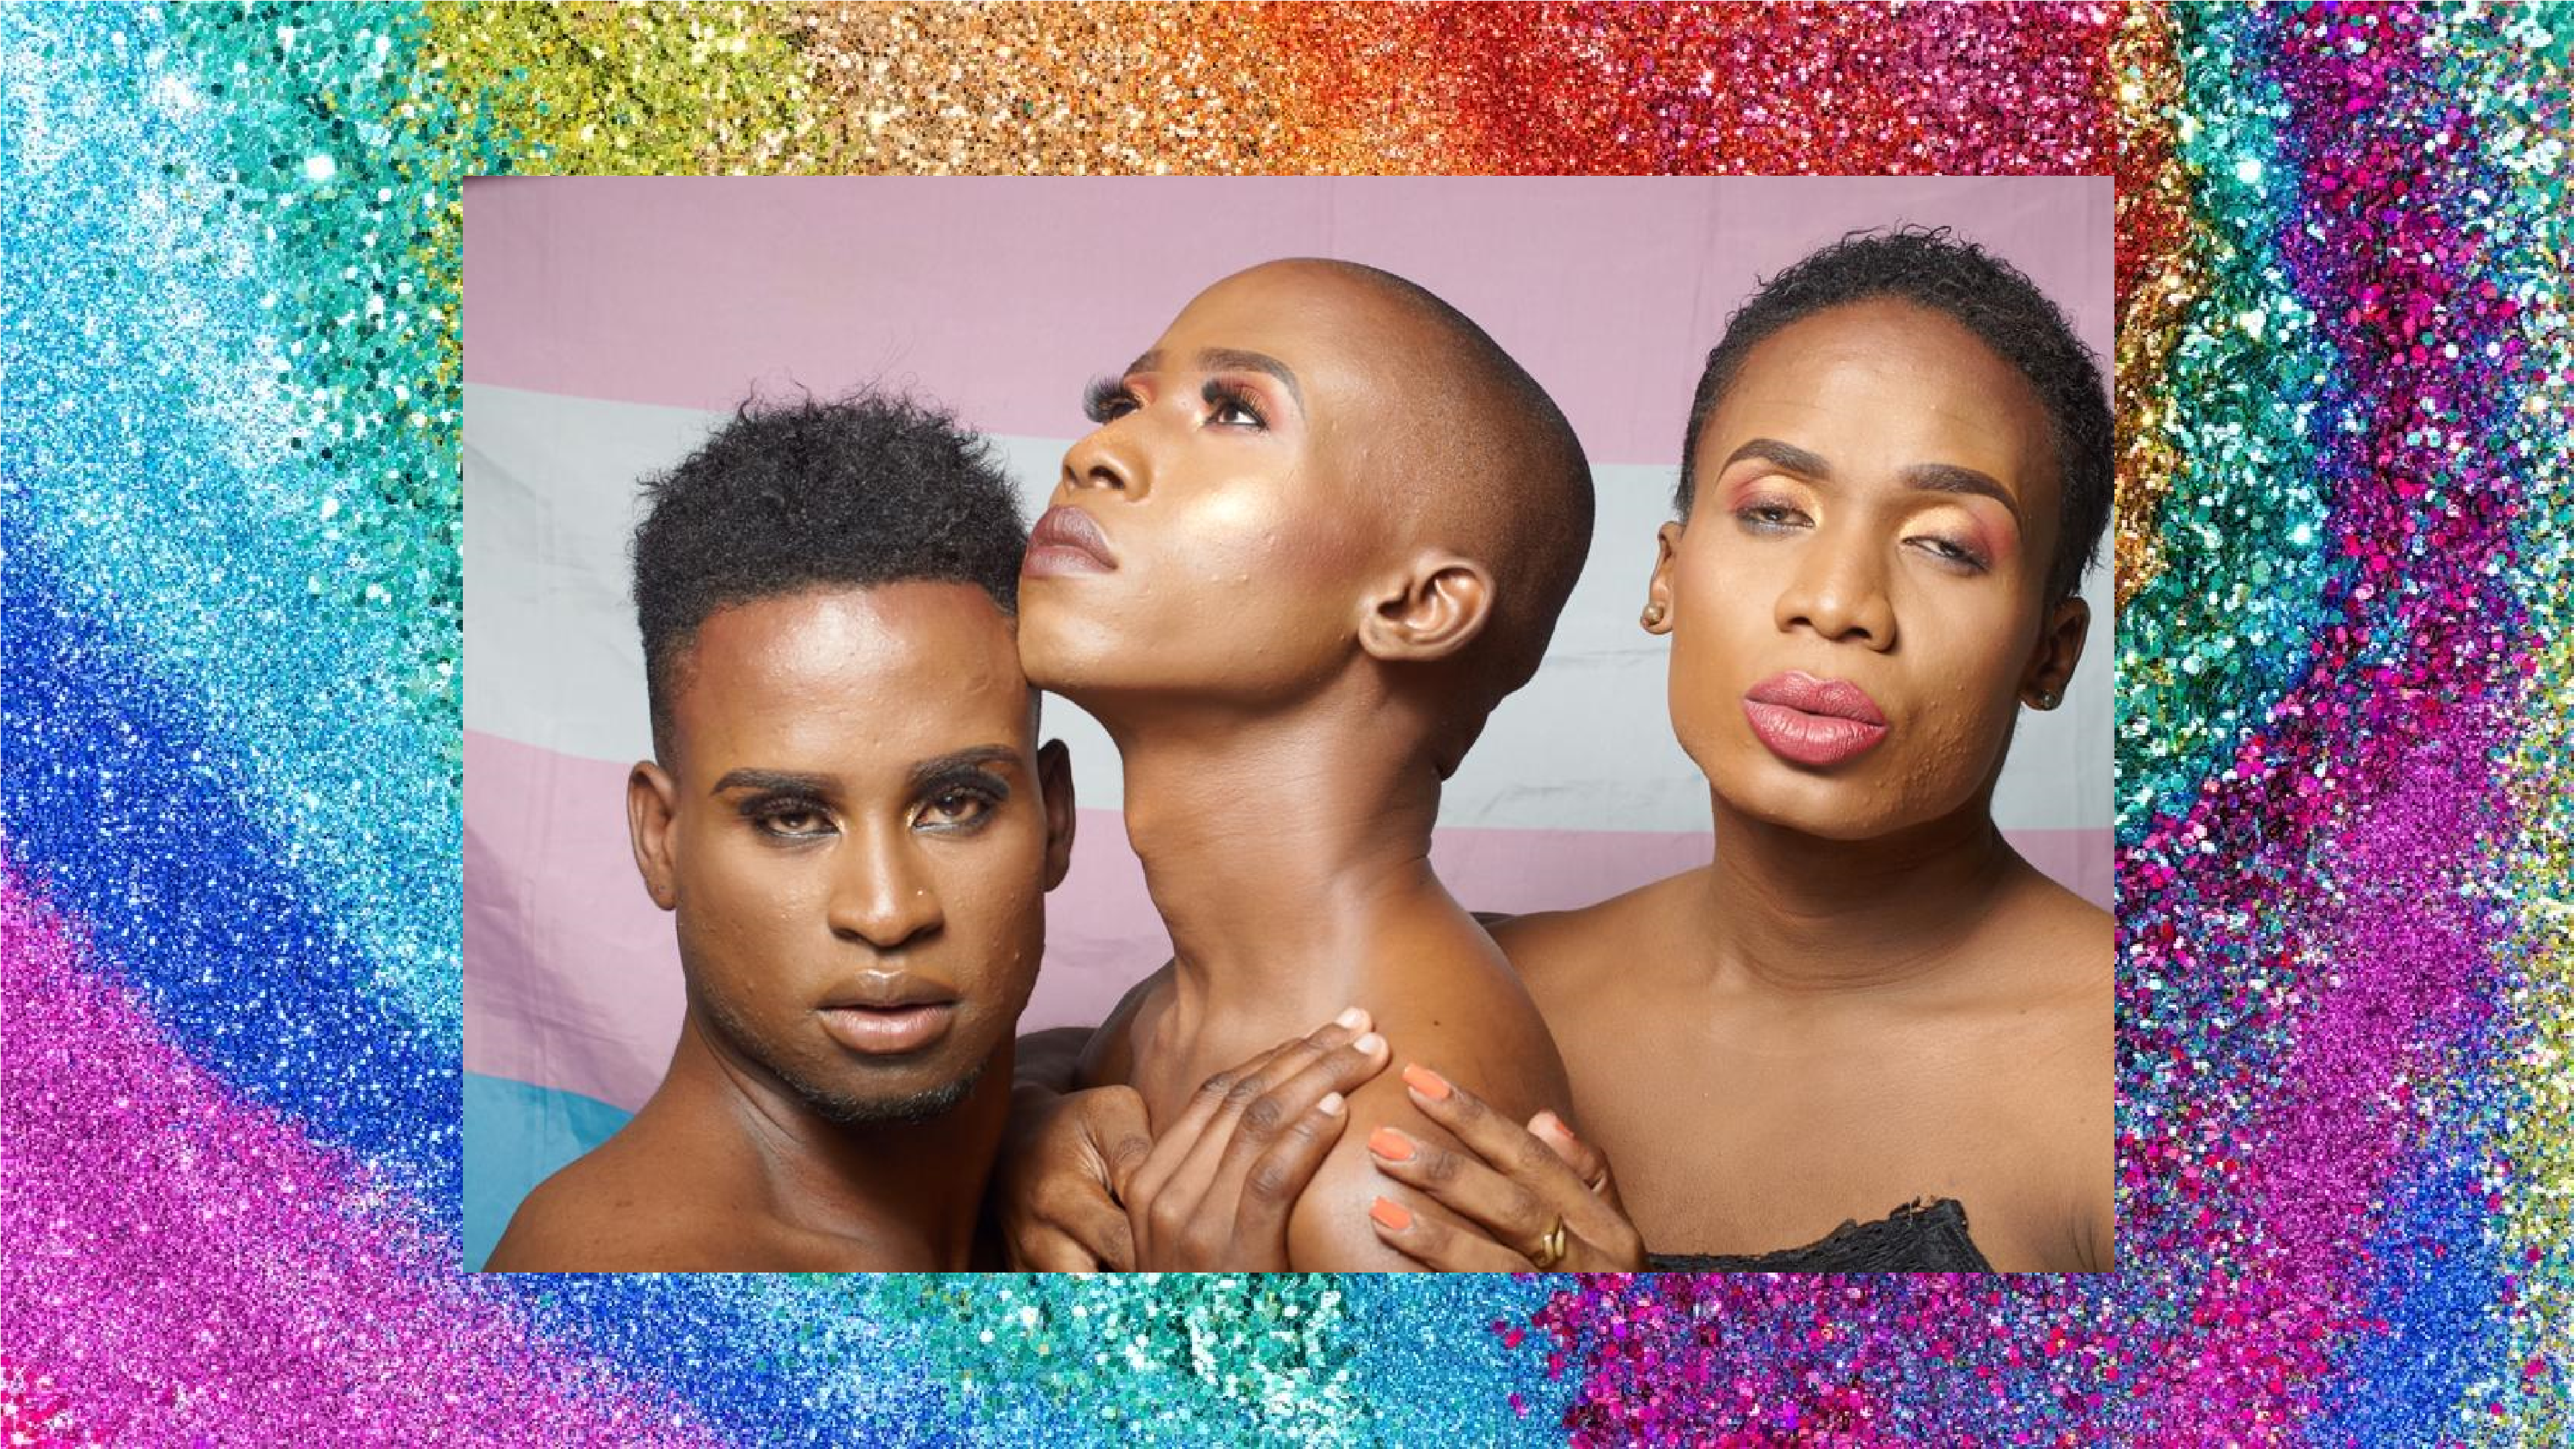 A large image takes up the upper part of the page, featuring three glamorously dressed and made up people embracing in front of a trans pride flag. Behind this image is another image, which creates a glittery rainbow border.